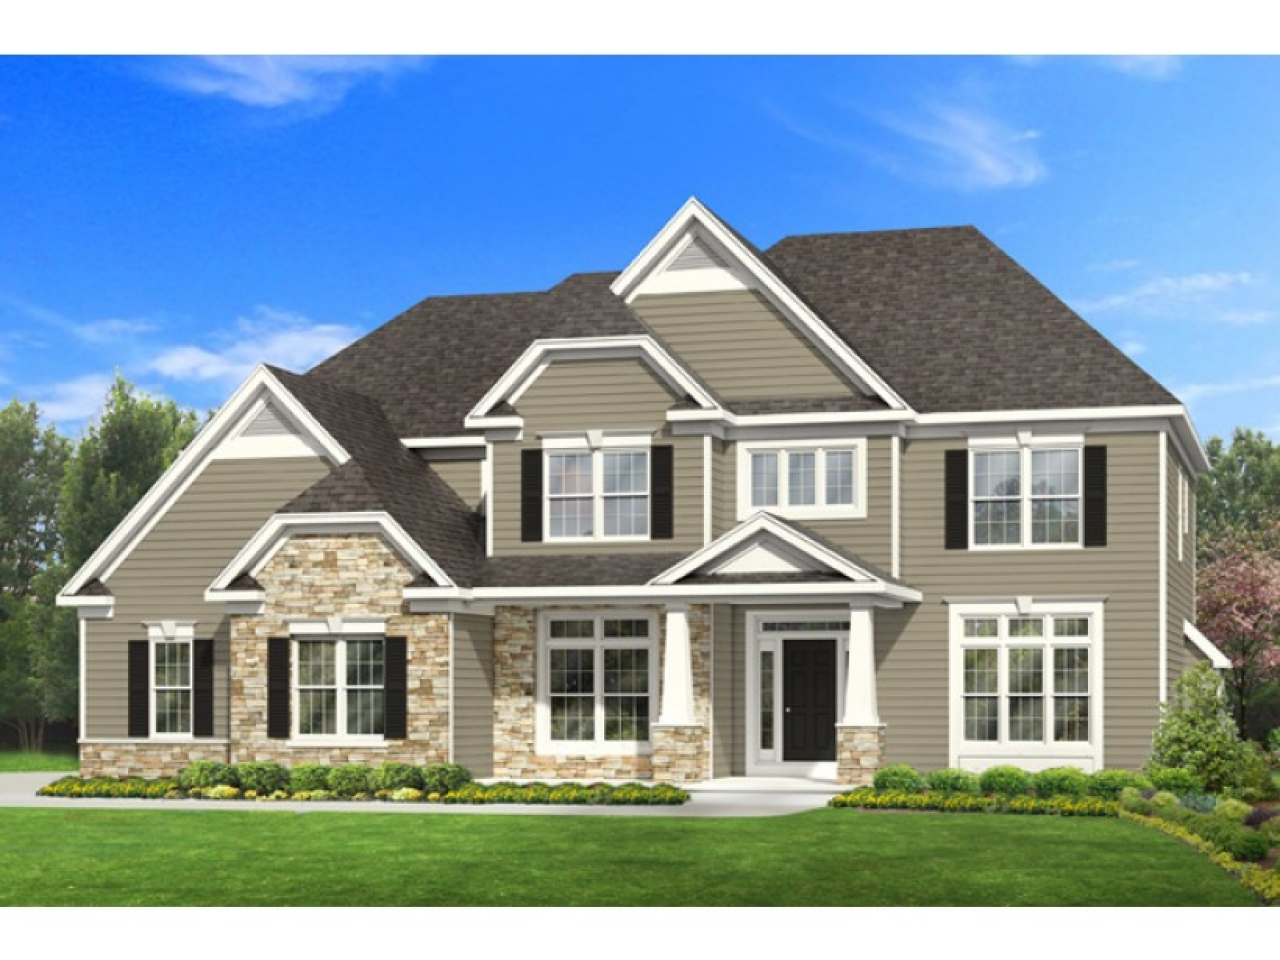 Long lots blueprints 3 bedroom 1 story 2 story 4 bedroom for One story two bedroom house plans